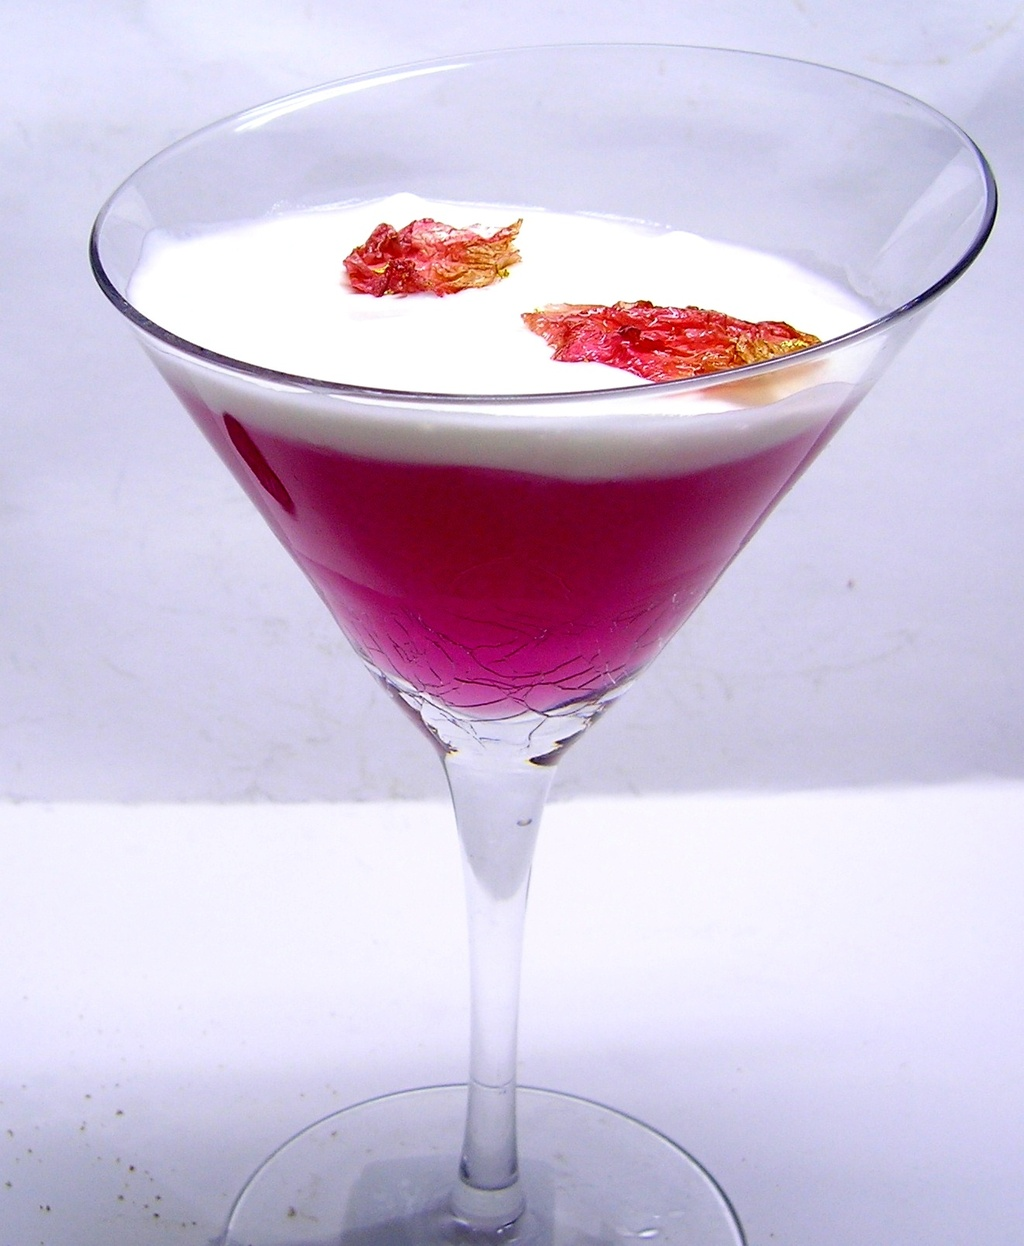 Valentines-day-ideas-for-brides-and-grooms-festive-cocktails-2.full